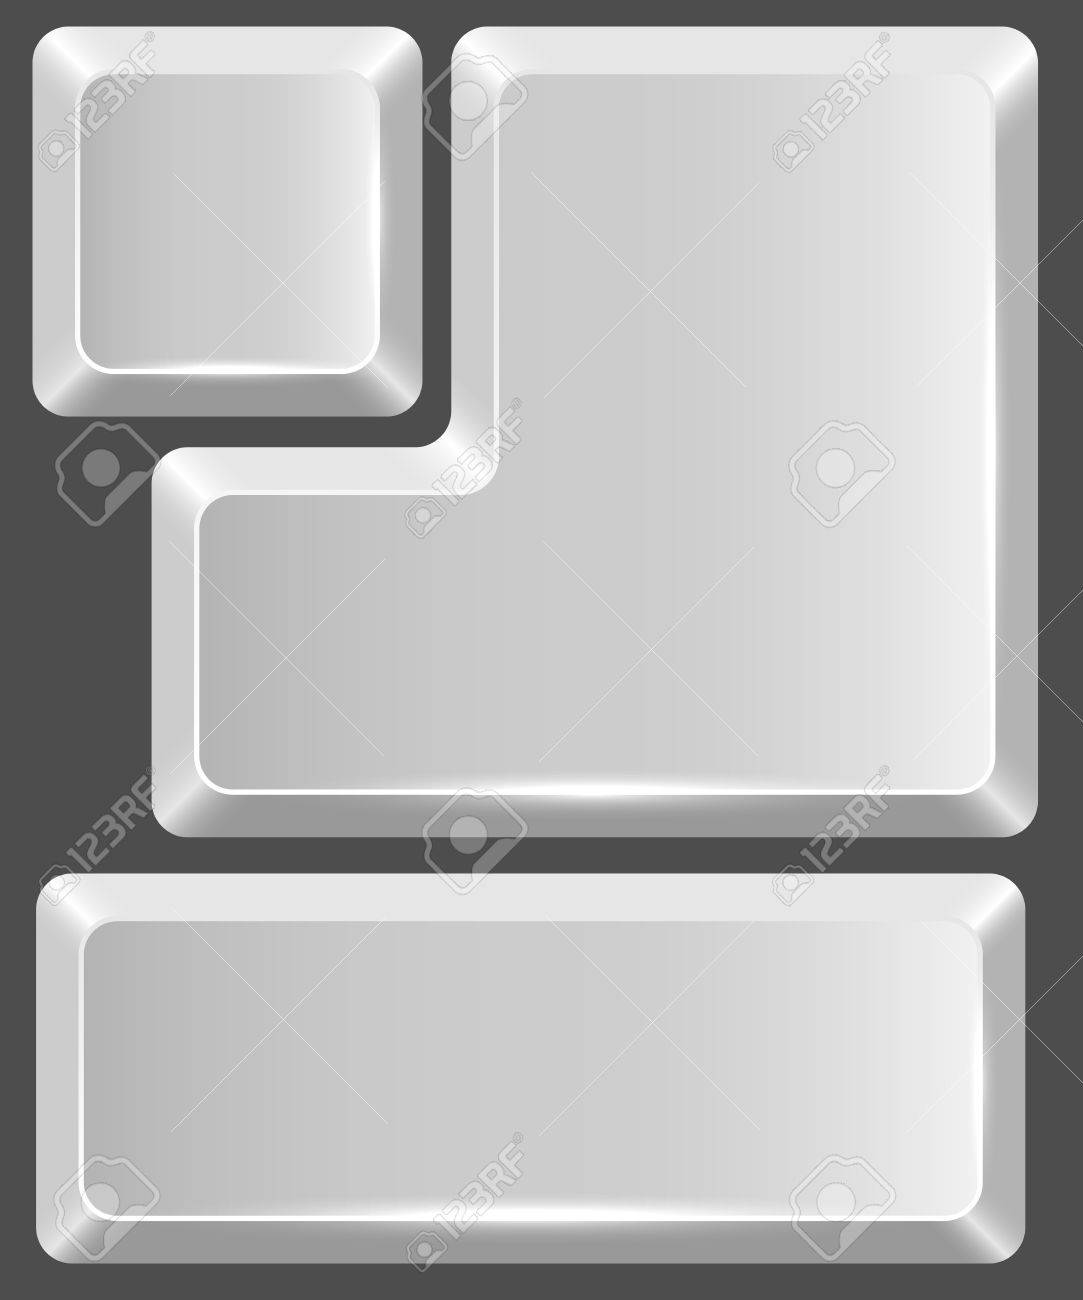 Blank white keyboard button isolated on gray background. Stock Vector - 18849626